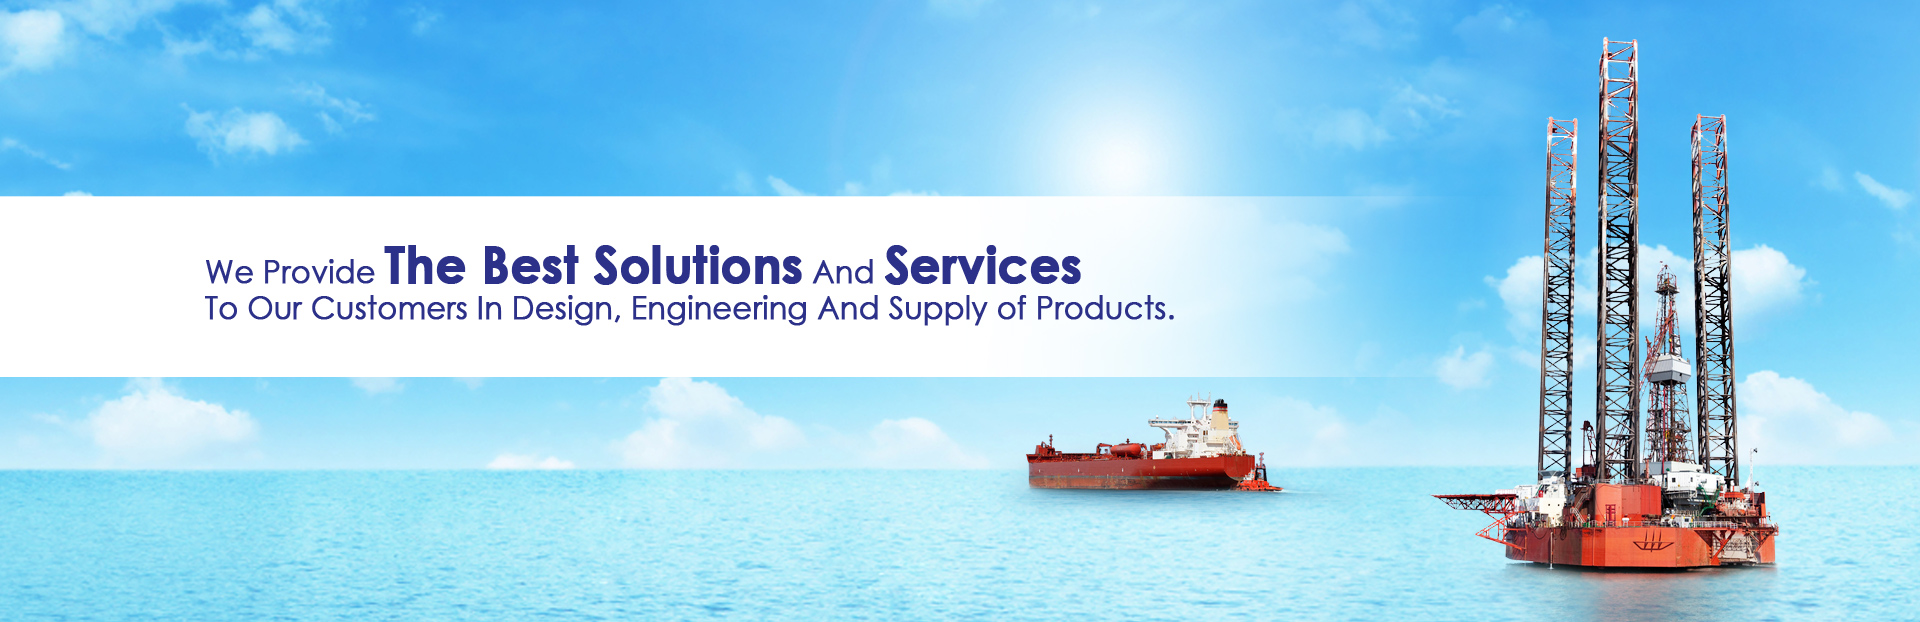 We Provide The Best Solutions And Services  To Our Customers In Design, Engineering And Supply of Products